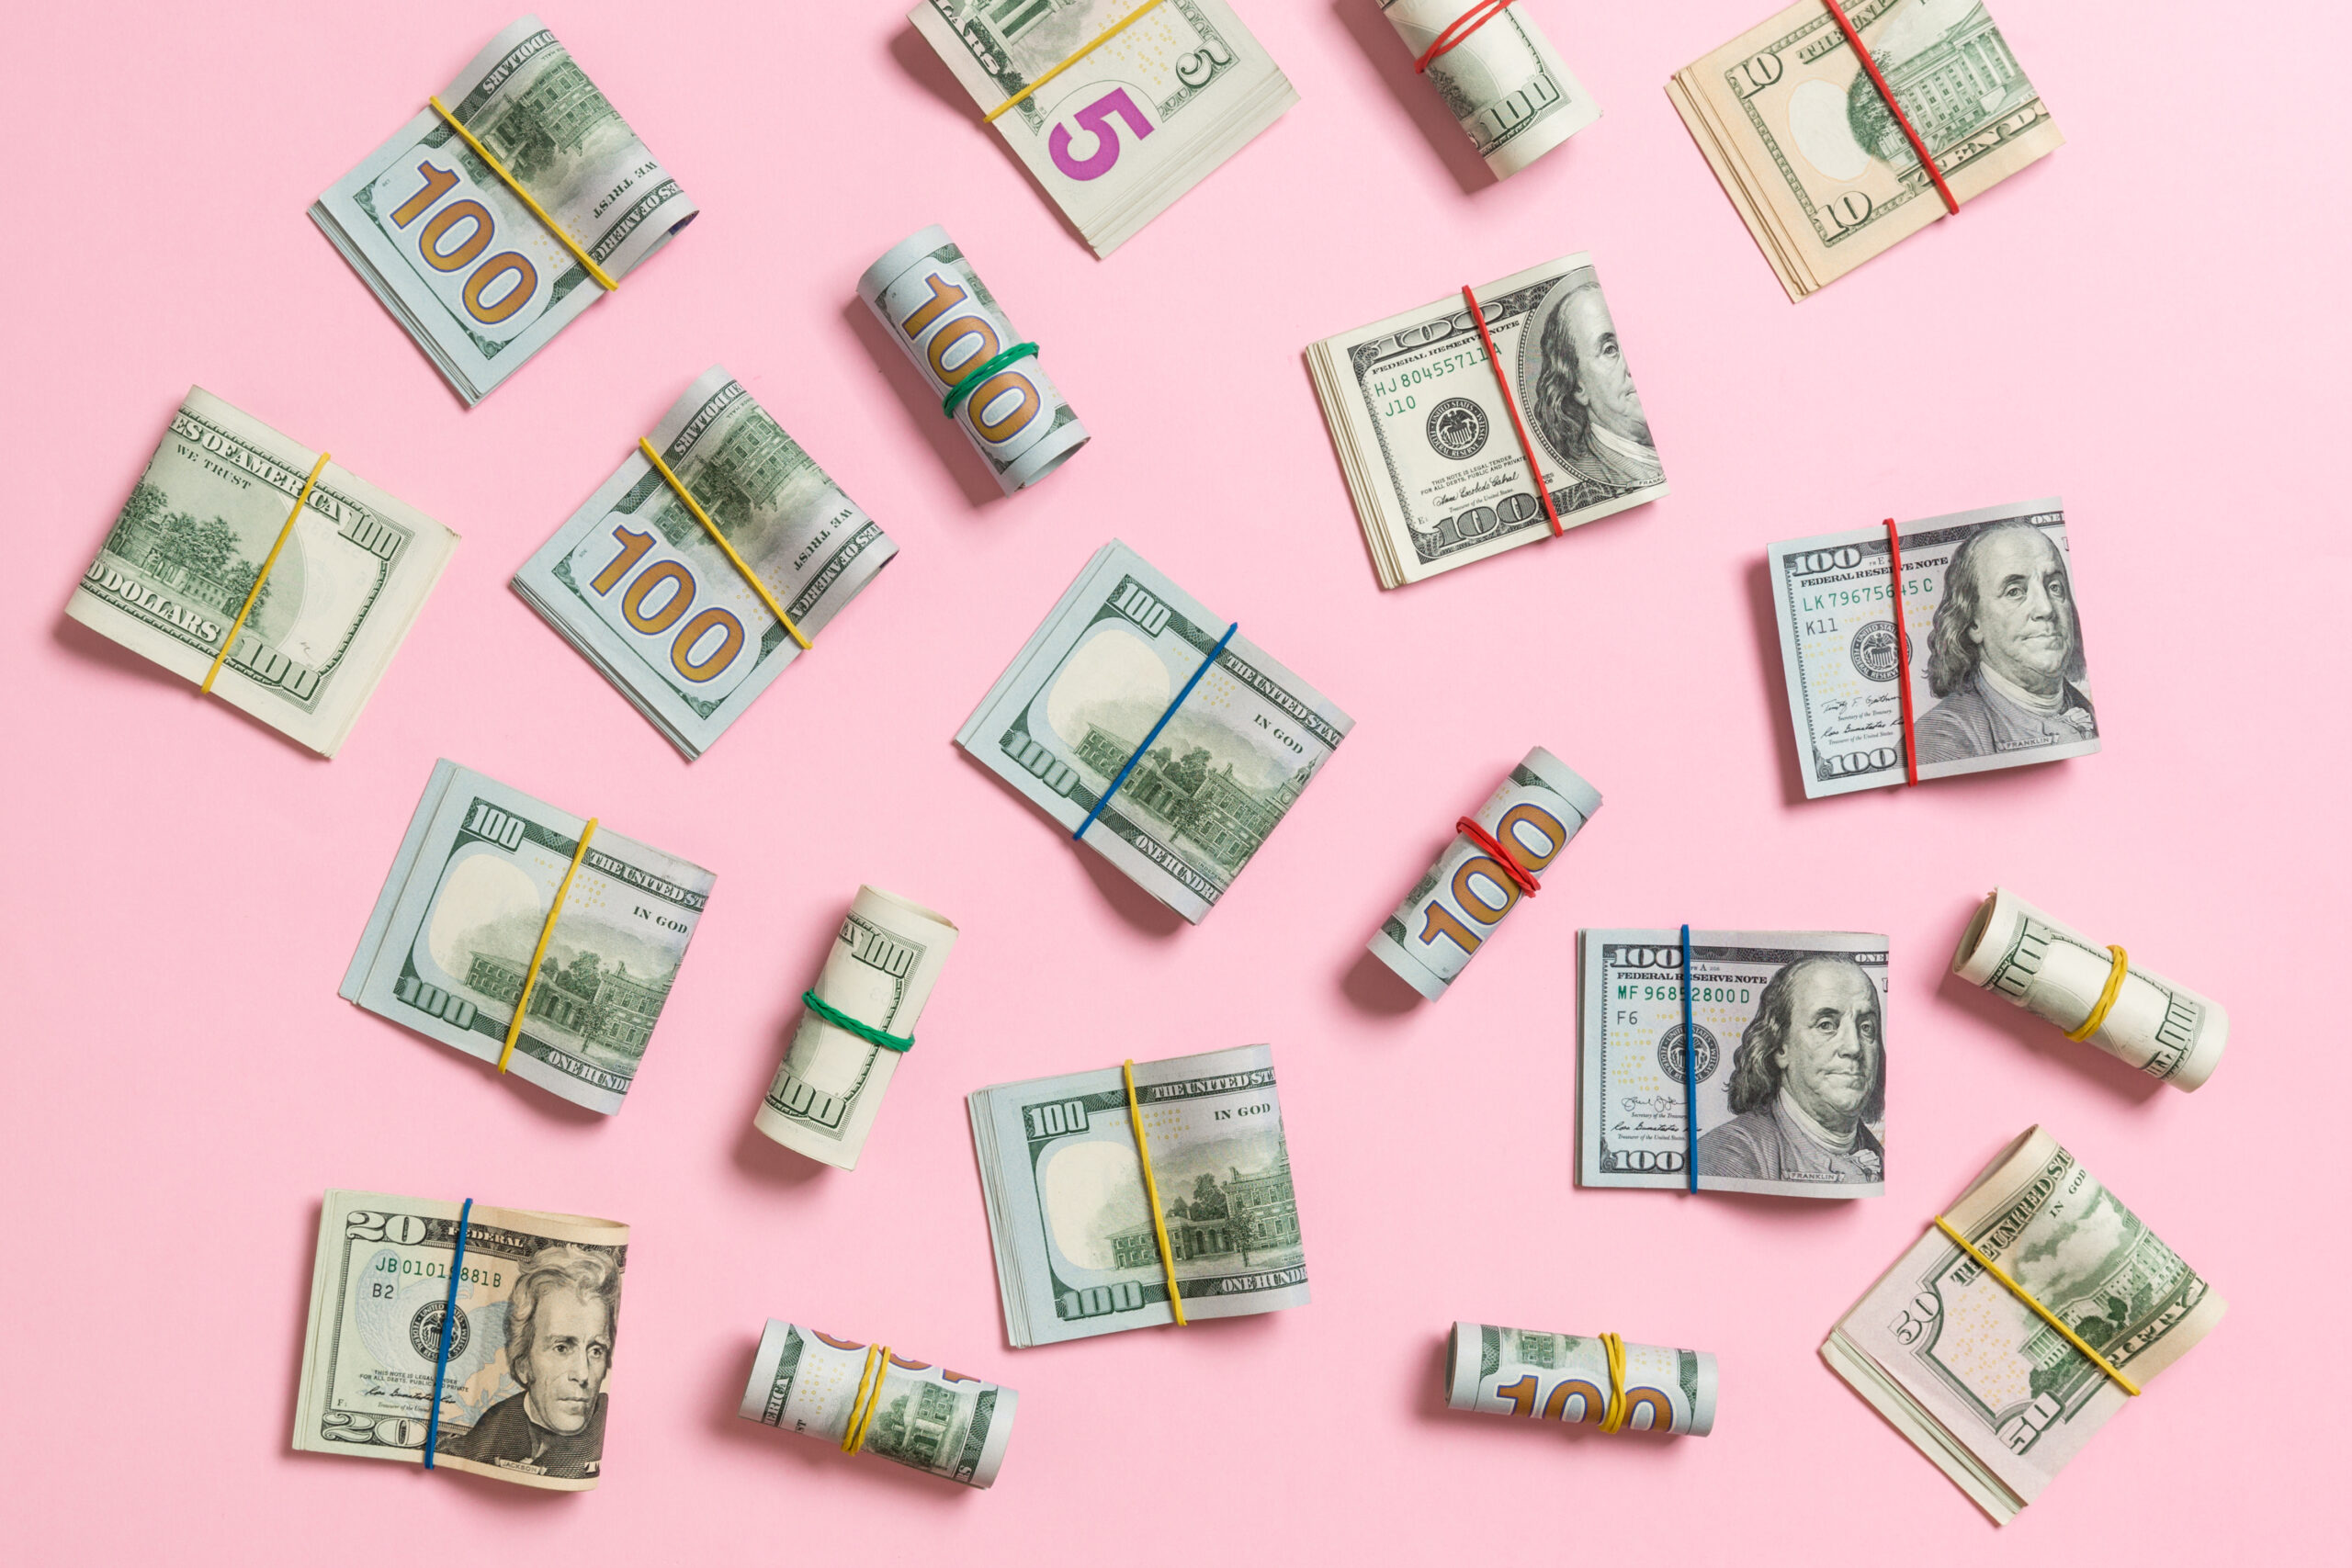 US dollars on a pink background